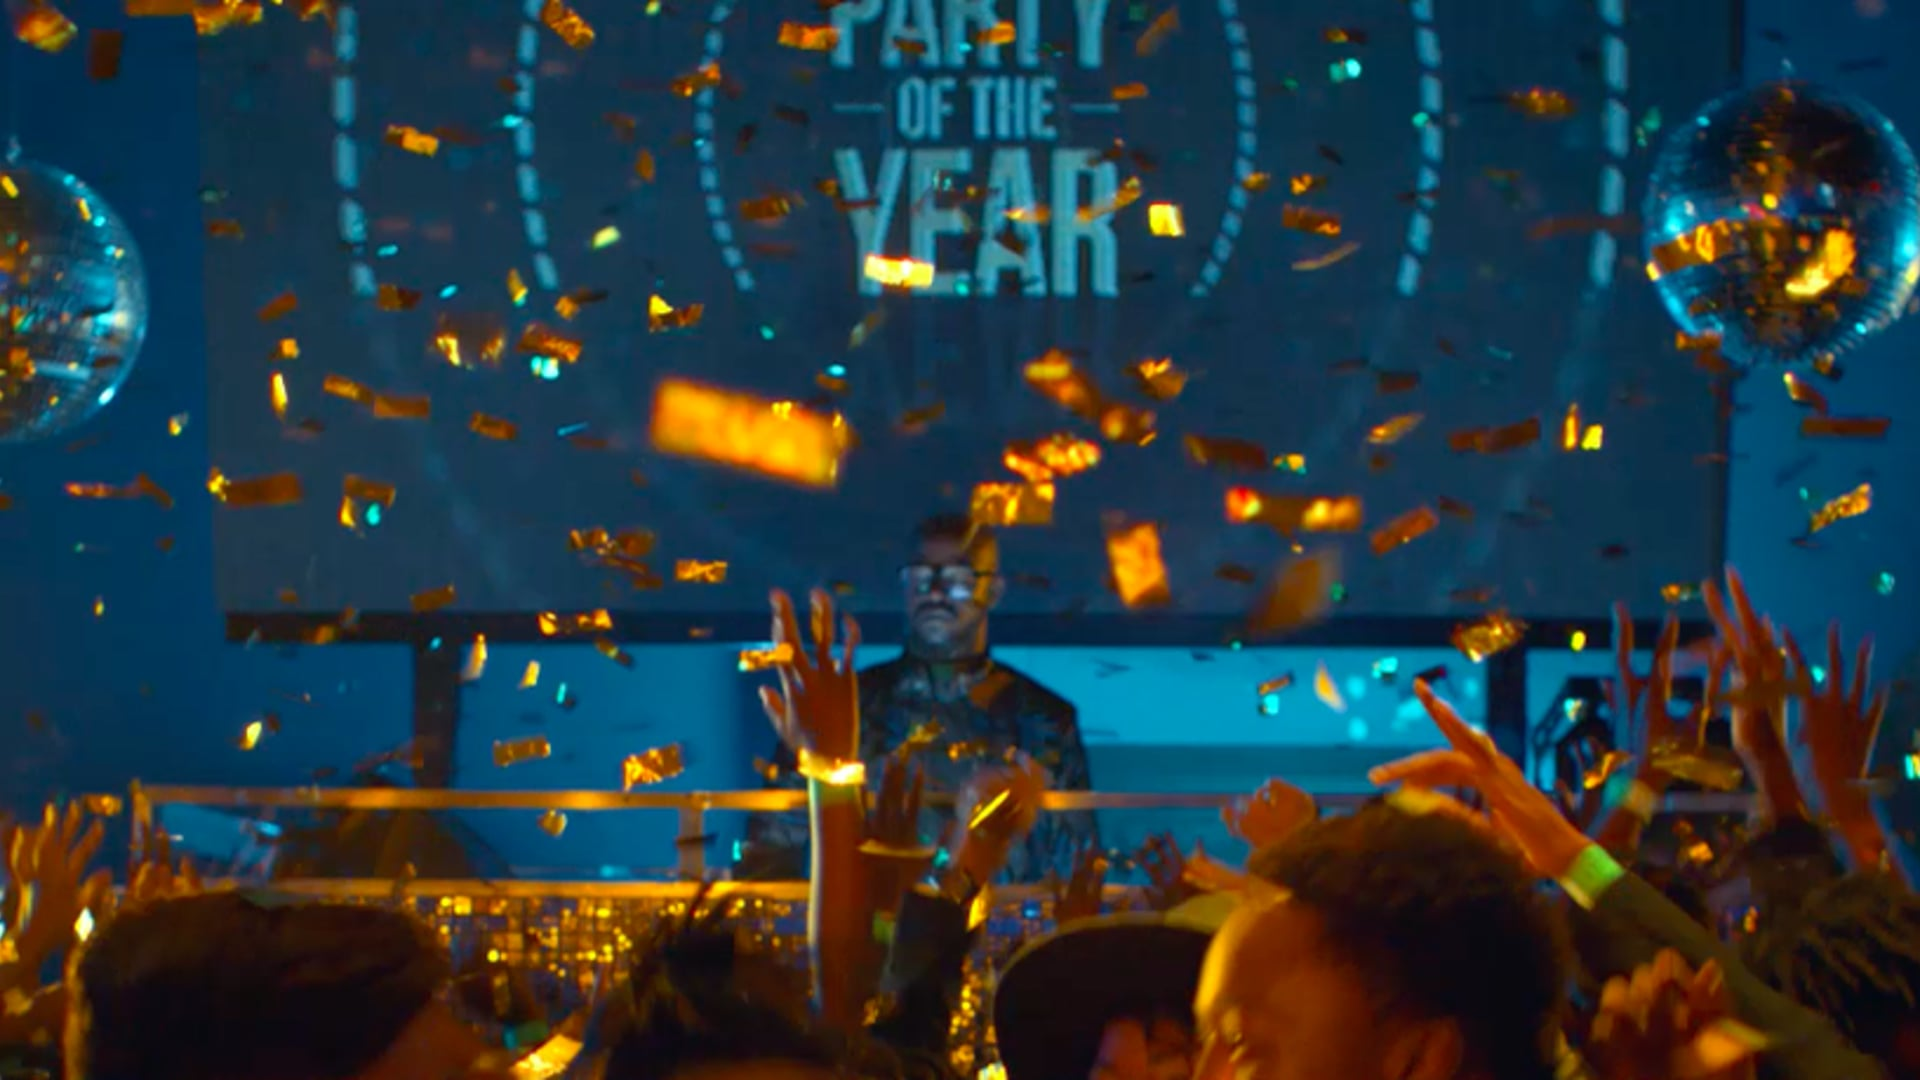 Axe 'Party of the Year'